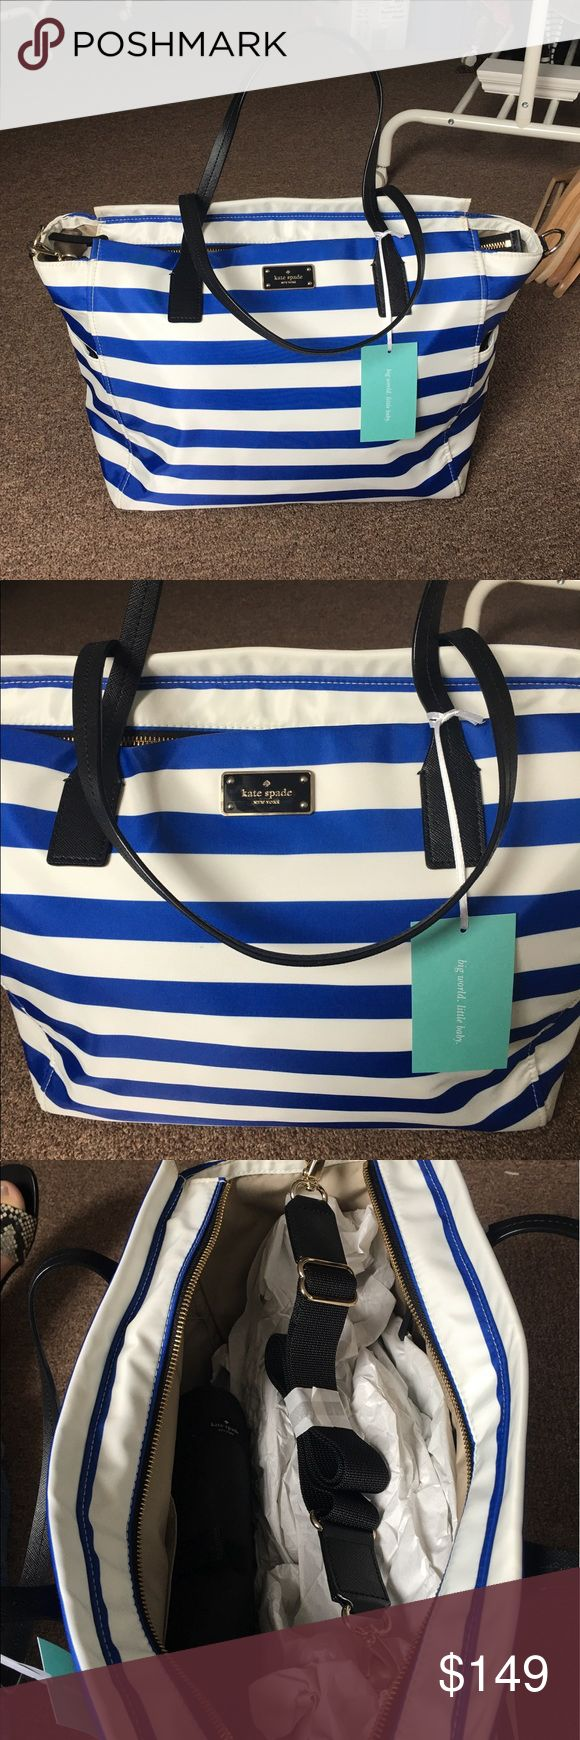 Kate Spade Baby Diaper Bag Brand new with tags & paper inside, blue and white Kate Spade diaper bag. It's huge for multiple items! Great purchase! kate spade Bags Baby Bags